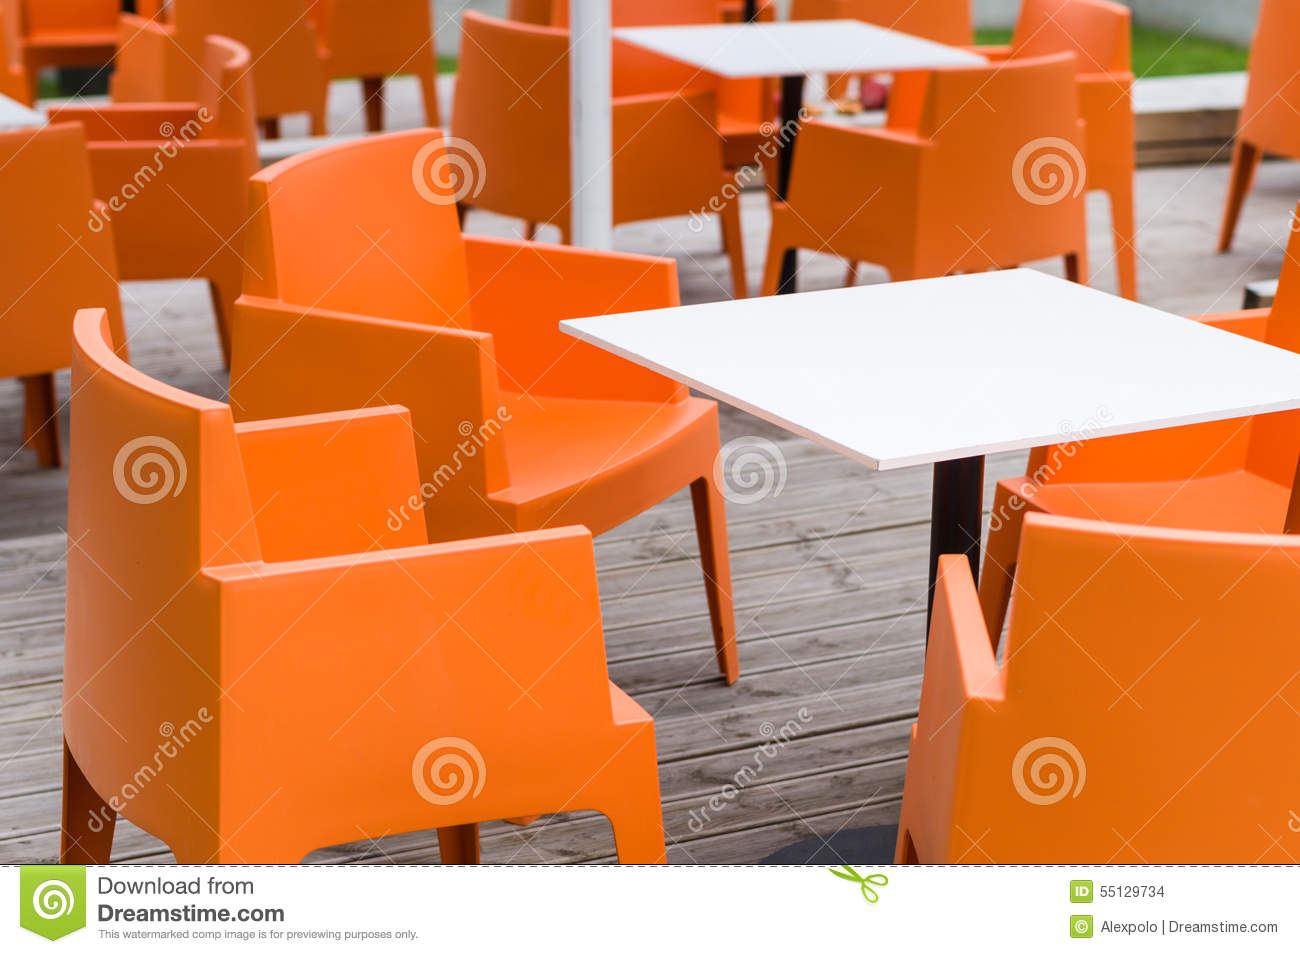 Modern Furniture Outdoor Cafe Terrace With Orange Chairs Stock Photo Image